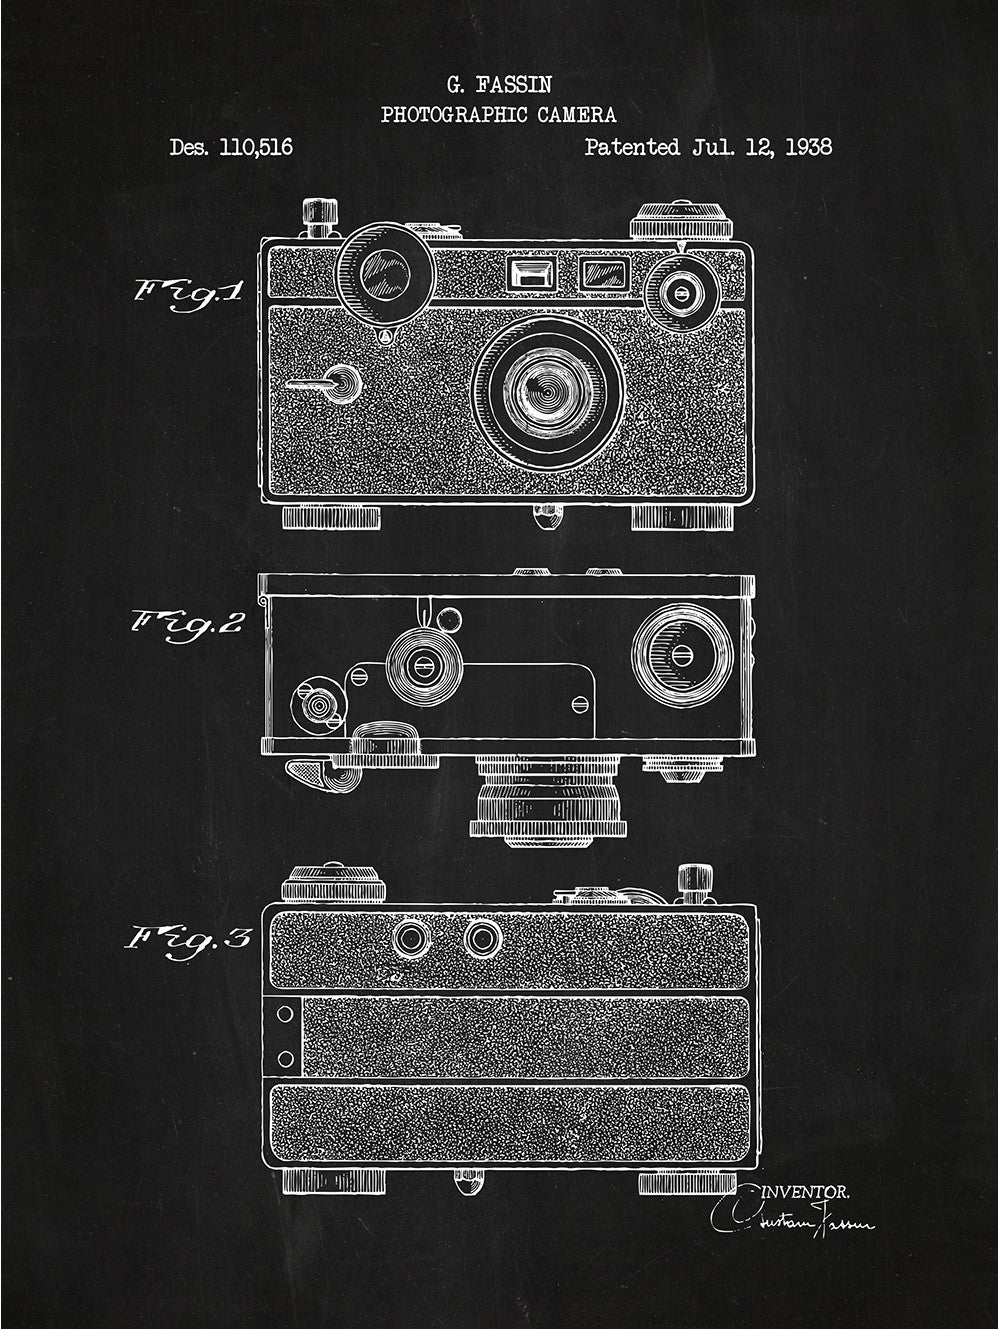 (J19) - Photographic Camera - G. Fassin - 1938